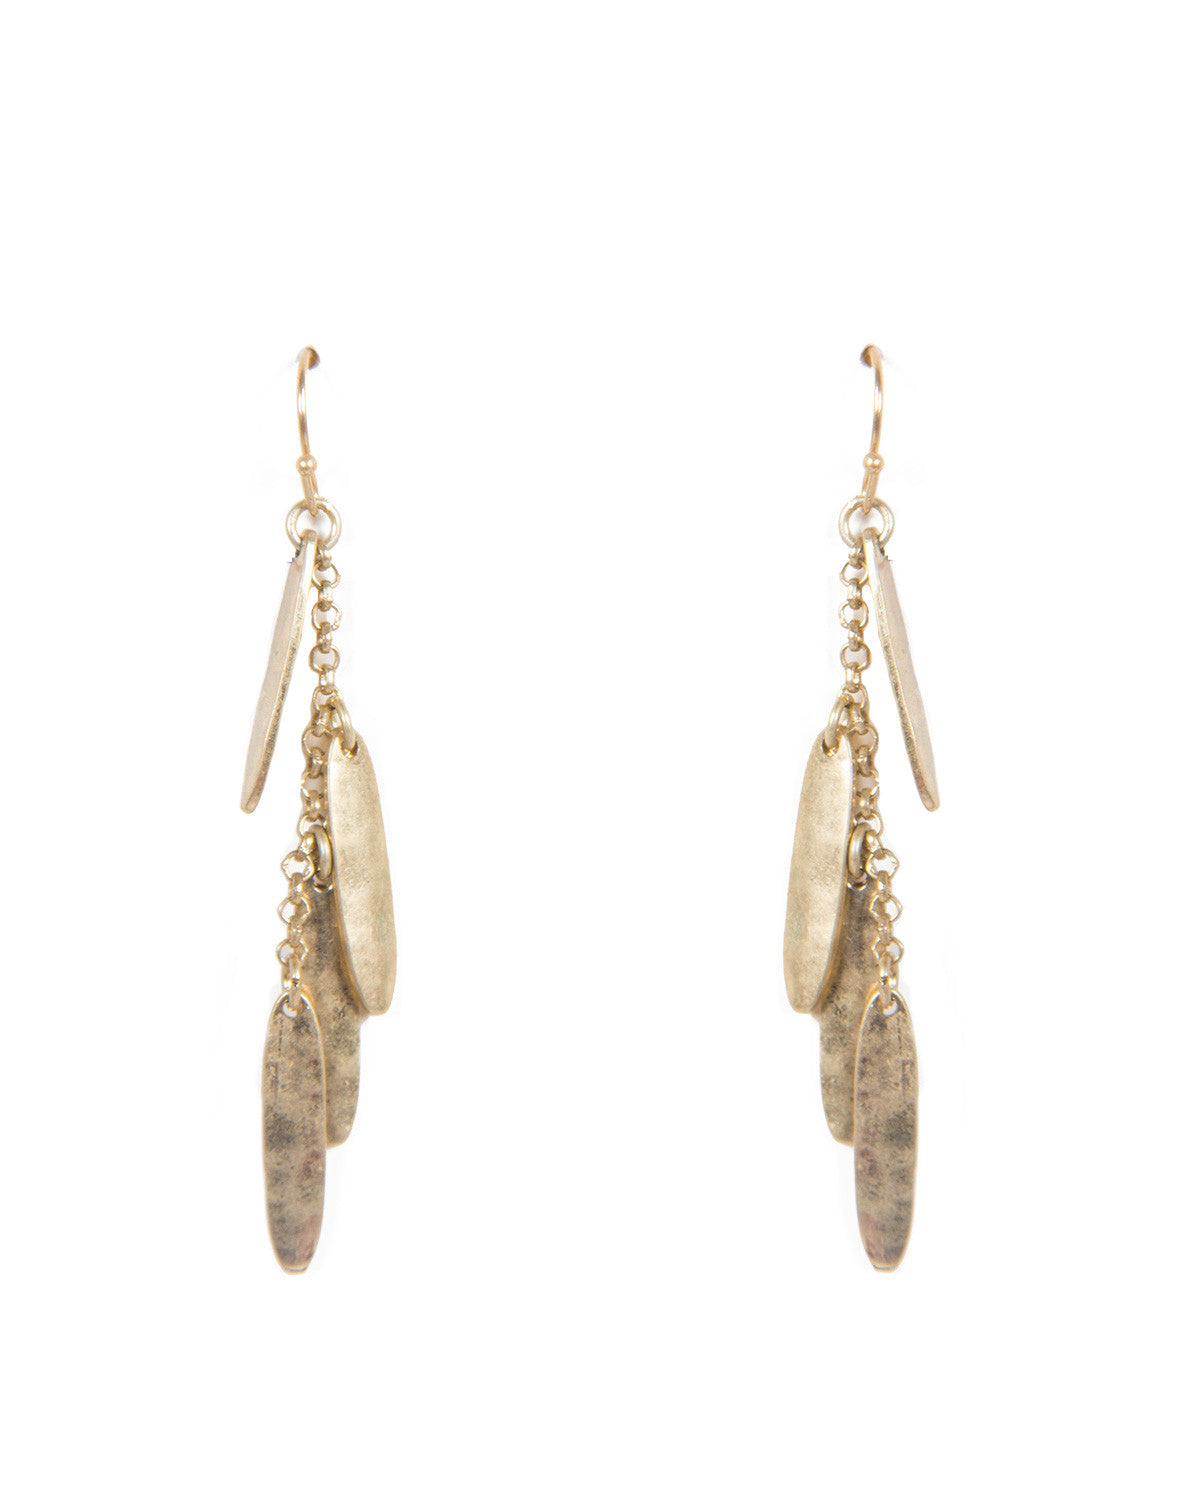 Dangling Metal Earrings - Gold